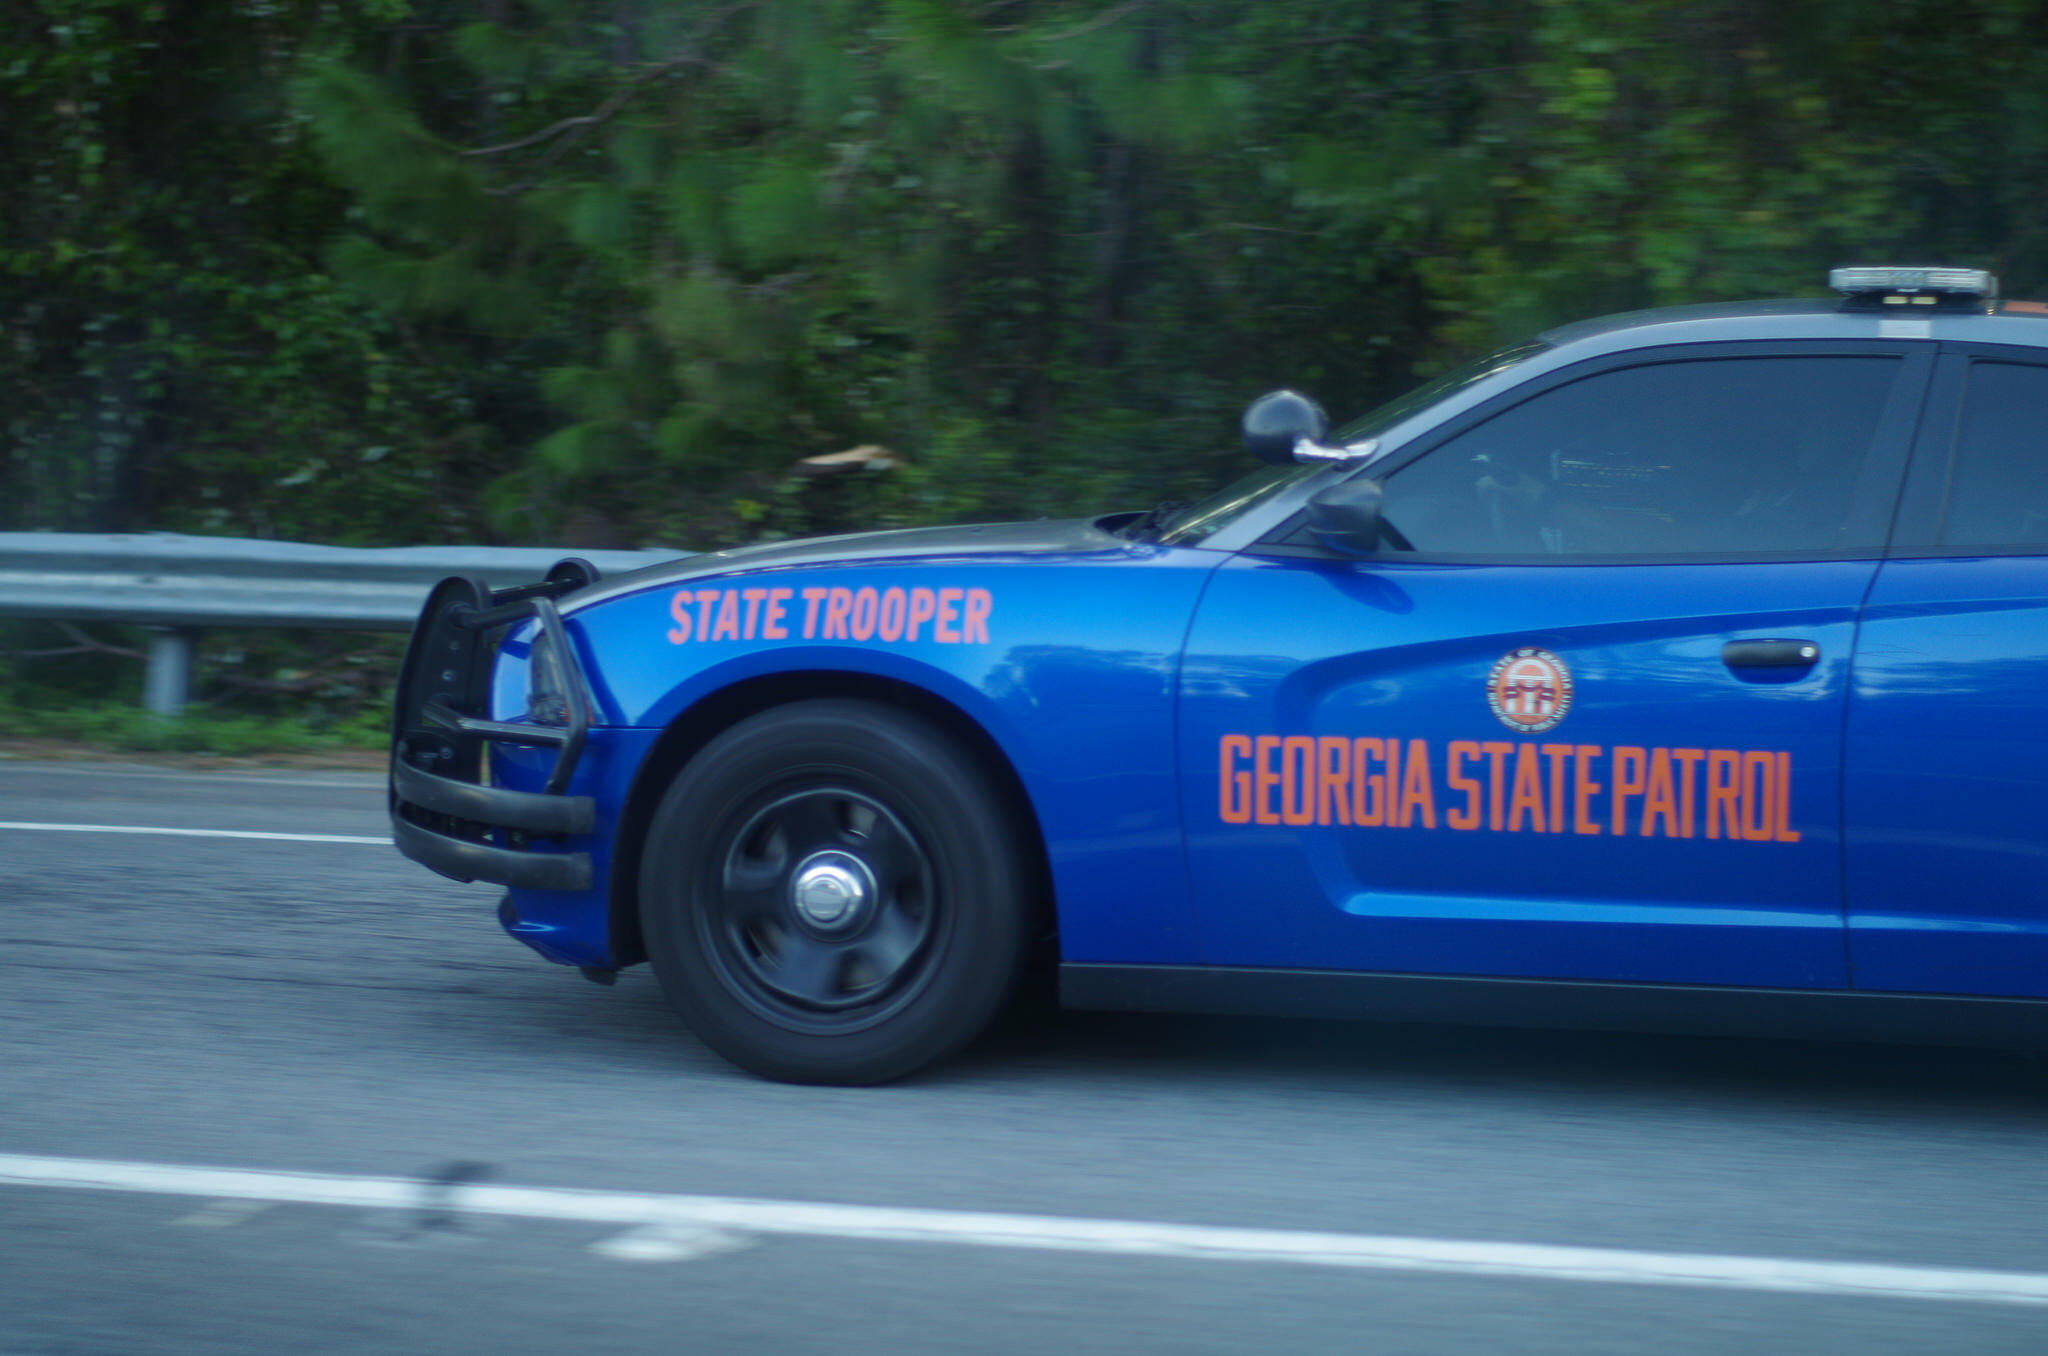 georgia state patrol will ticket you for driving in left lane | all